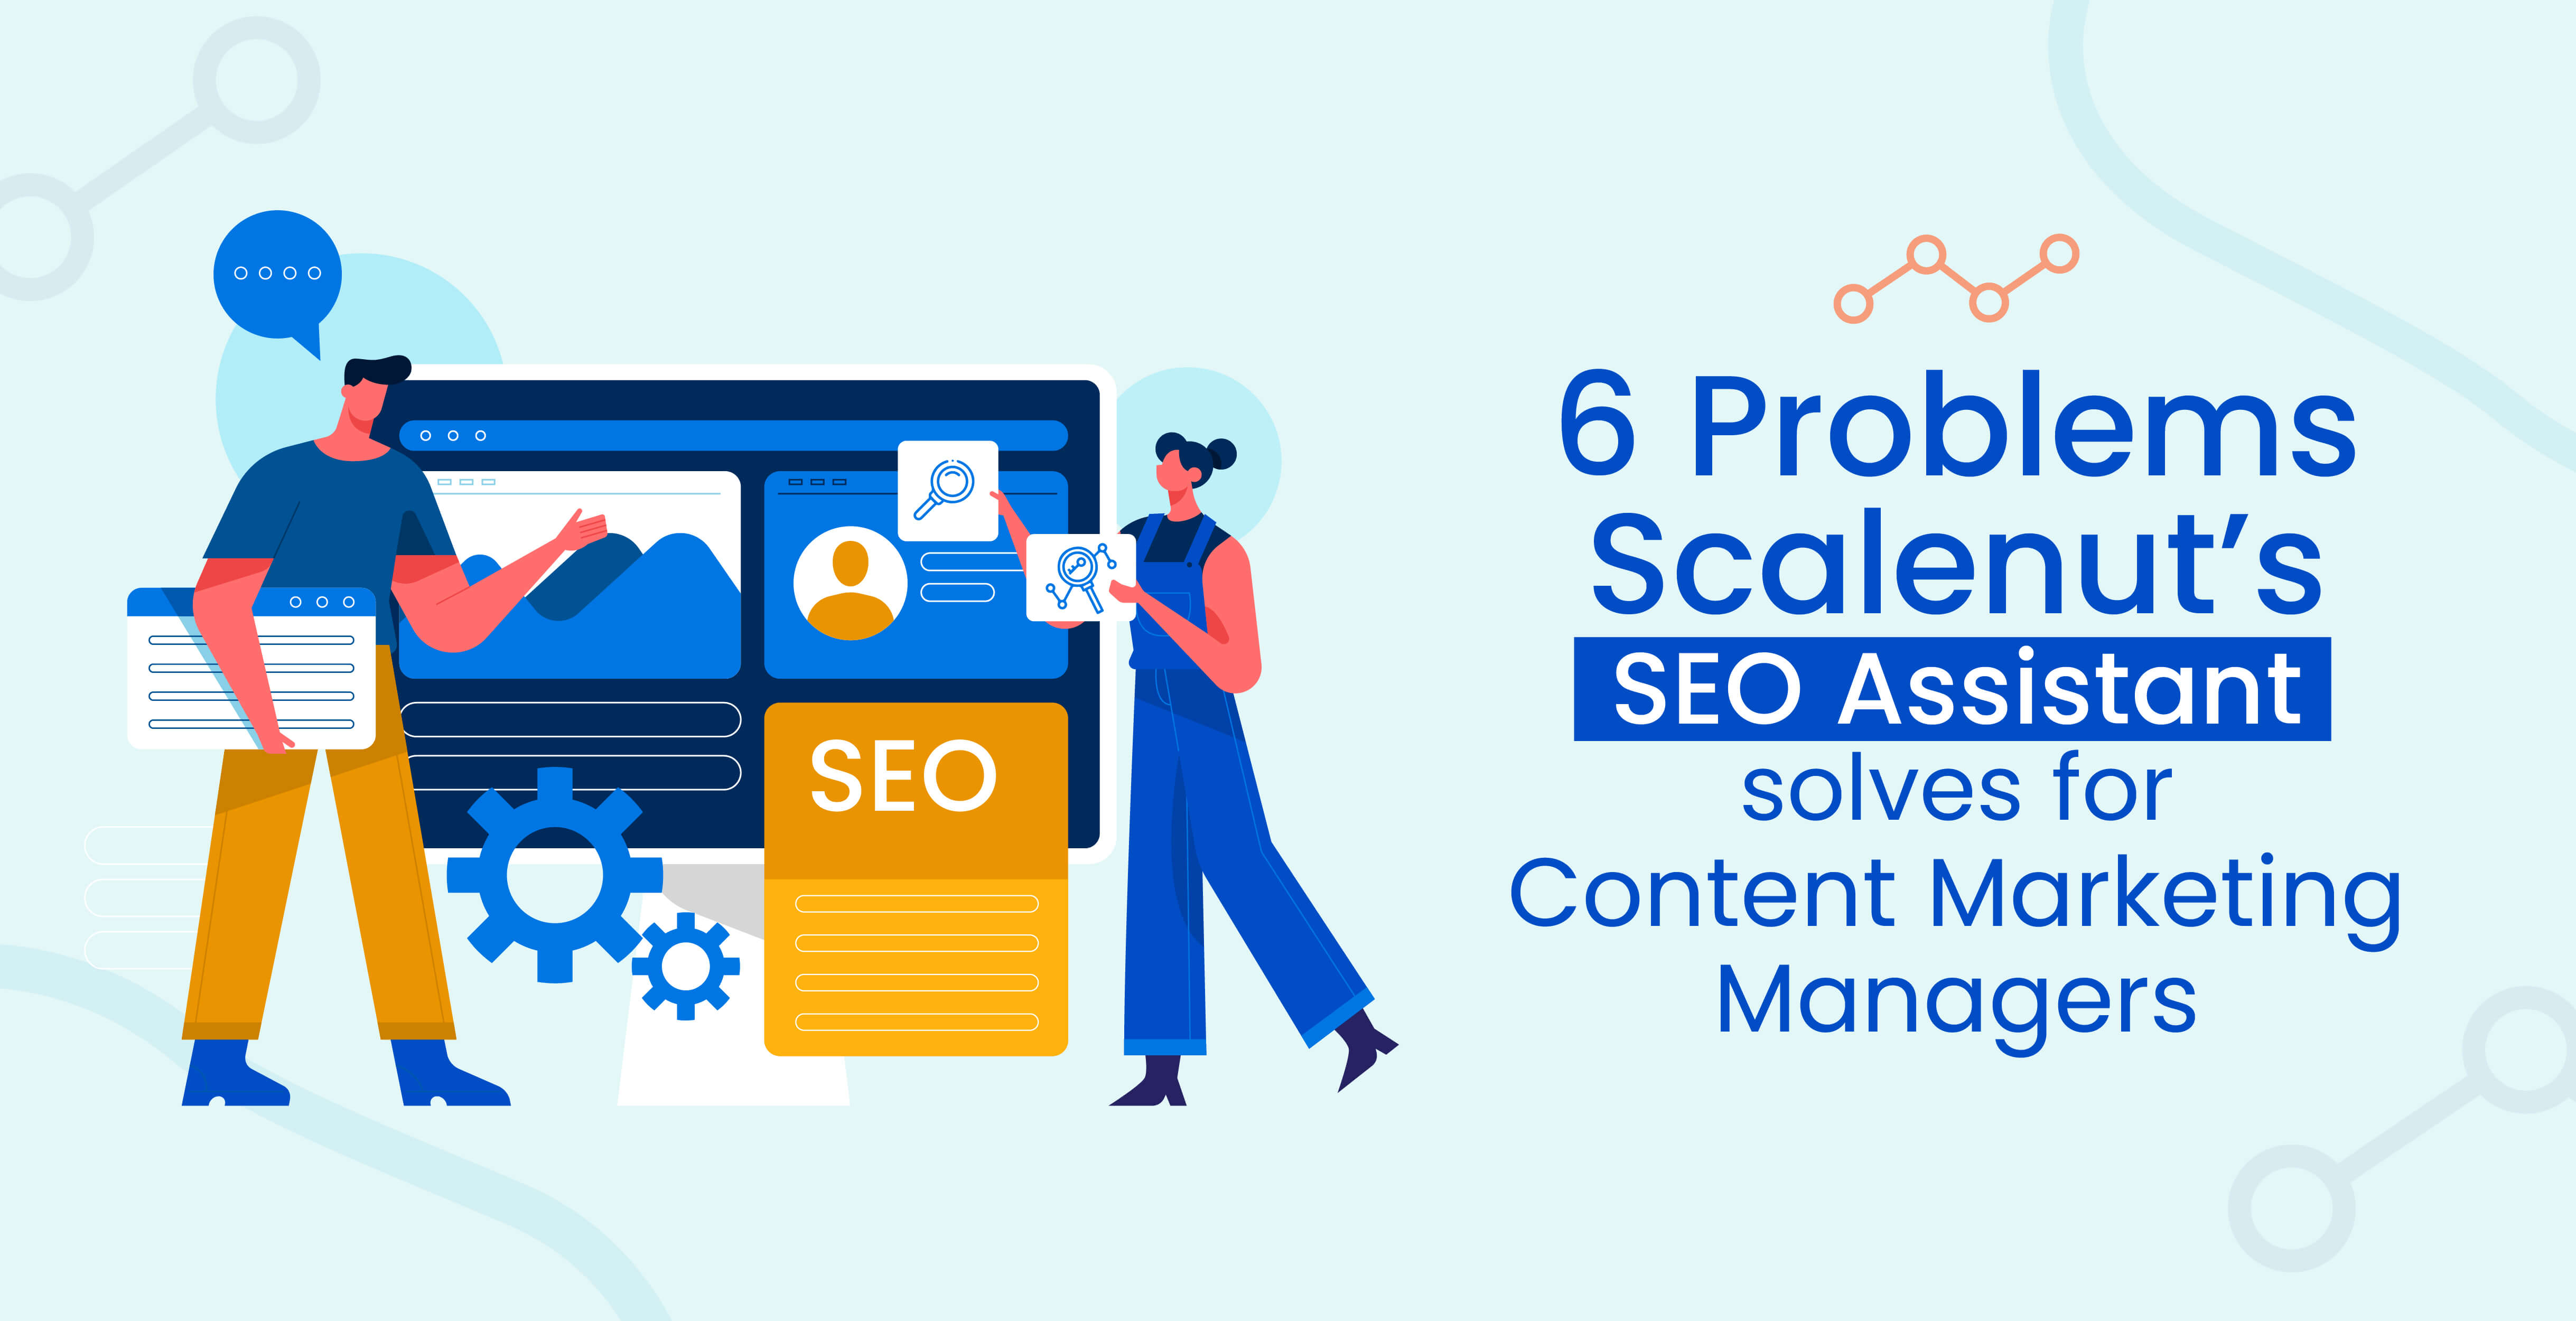 6 Problems Scalenut's SEO Assistant solves for Content Marketing Managers